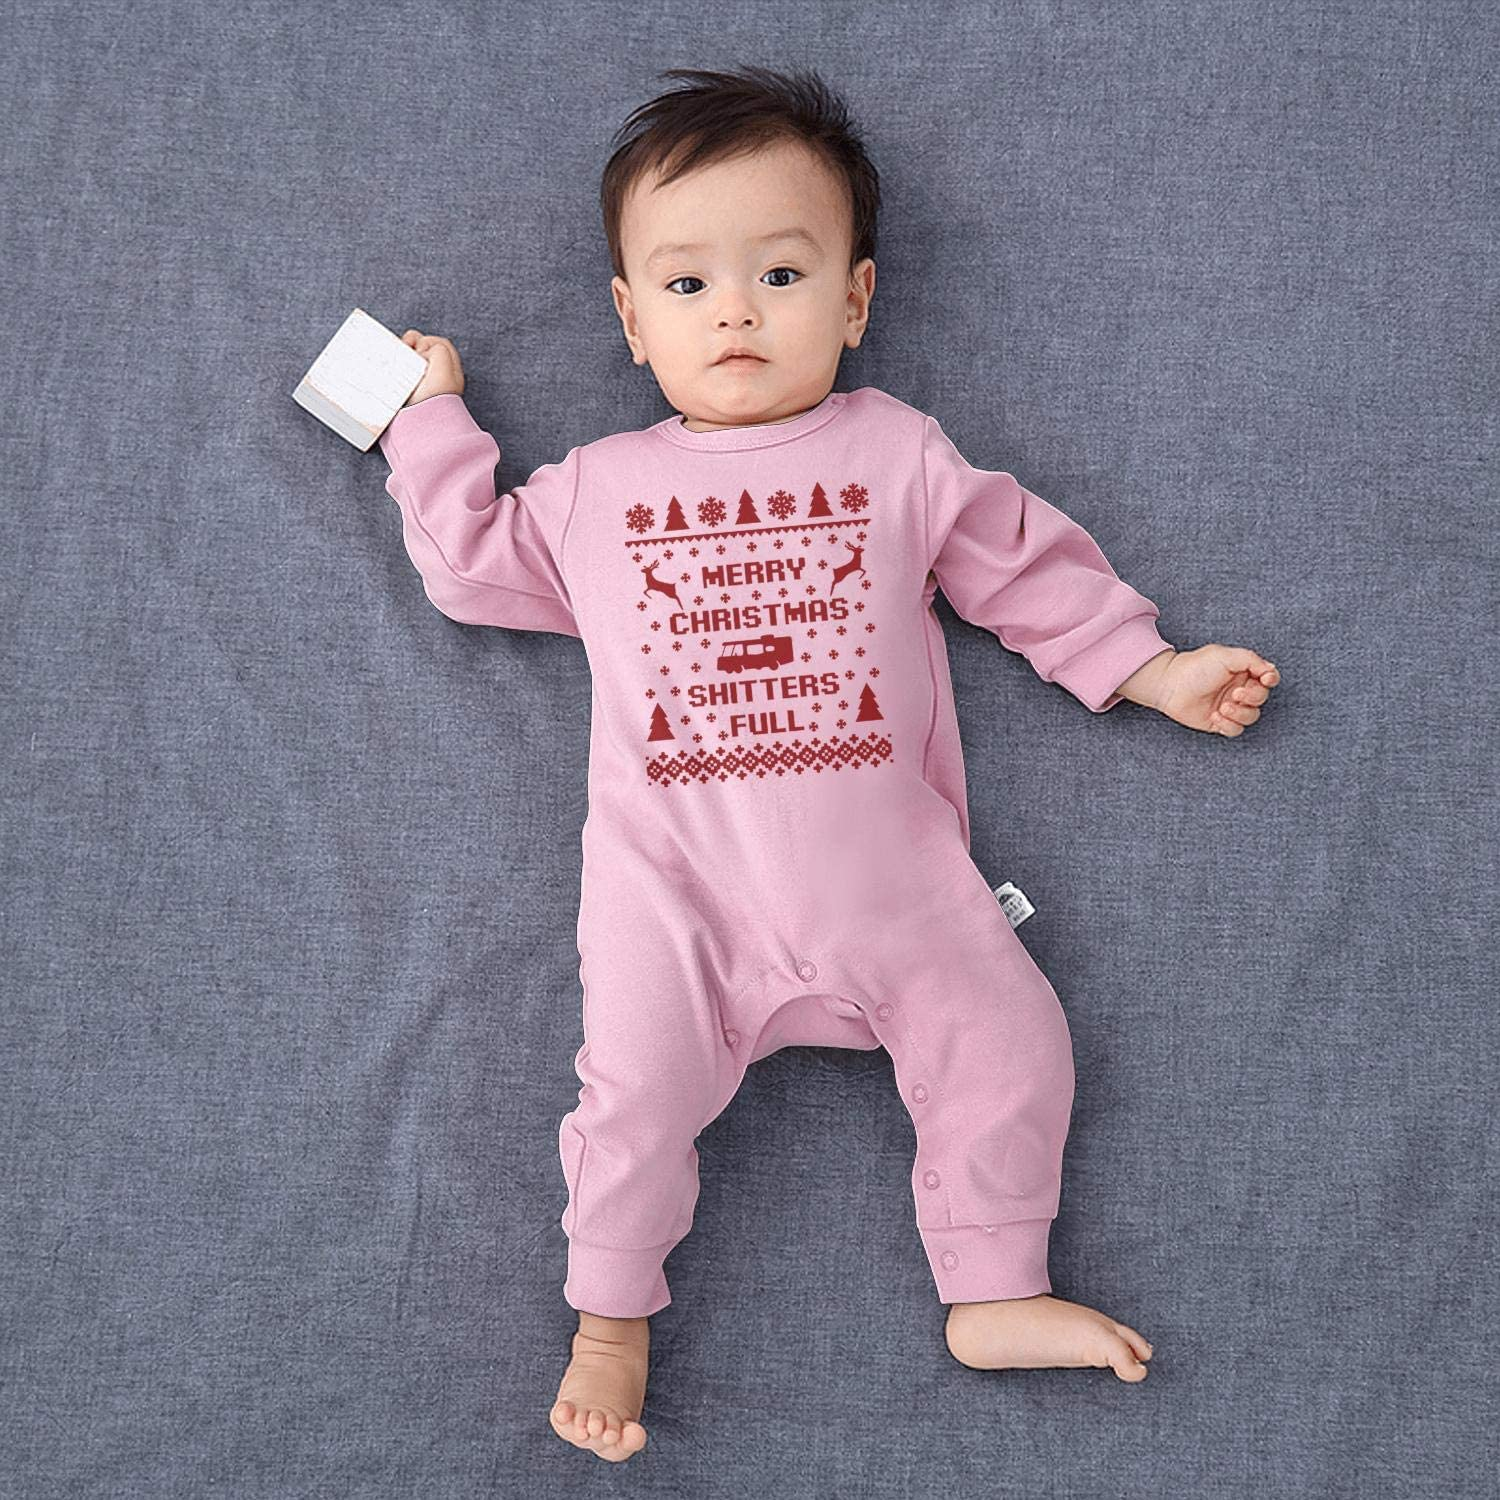 LHSCVJSEKL Merry Christmas Shitters Full Baby Onesie Organic Cotton Pretty Soft Girl Long Sleeve Bodysuit